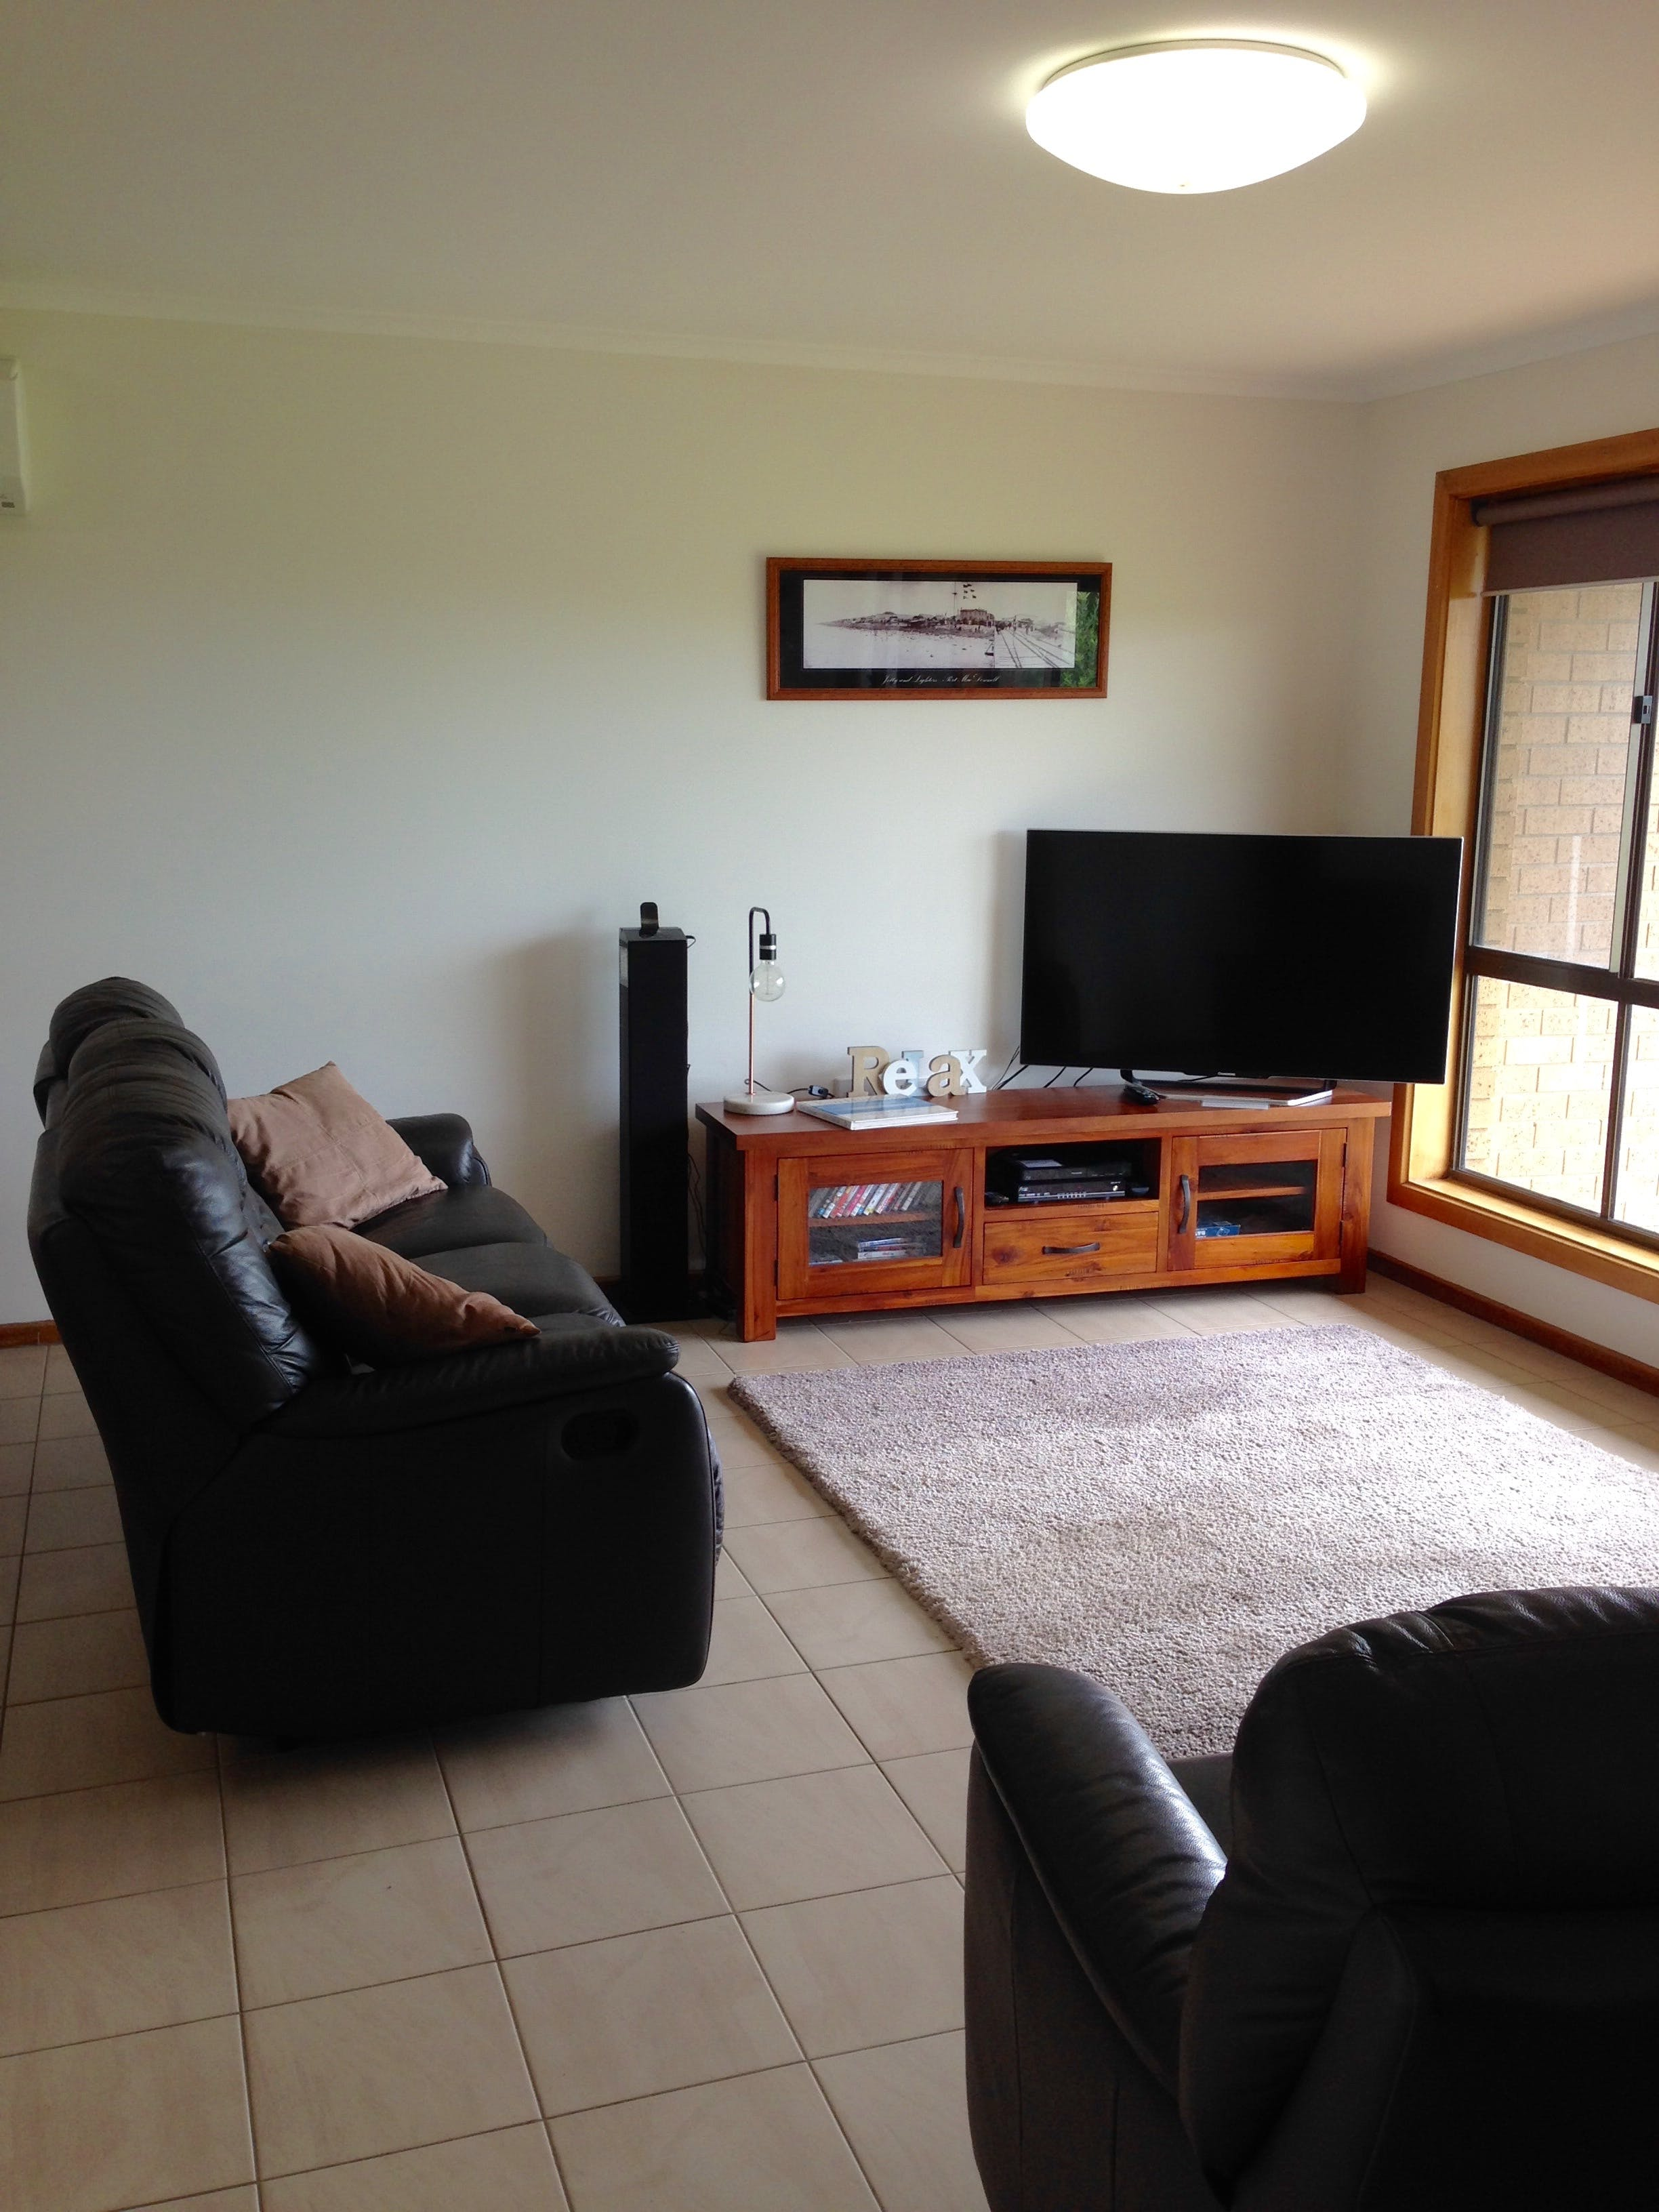 Springs Beach House - Tourism Adelaide